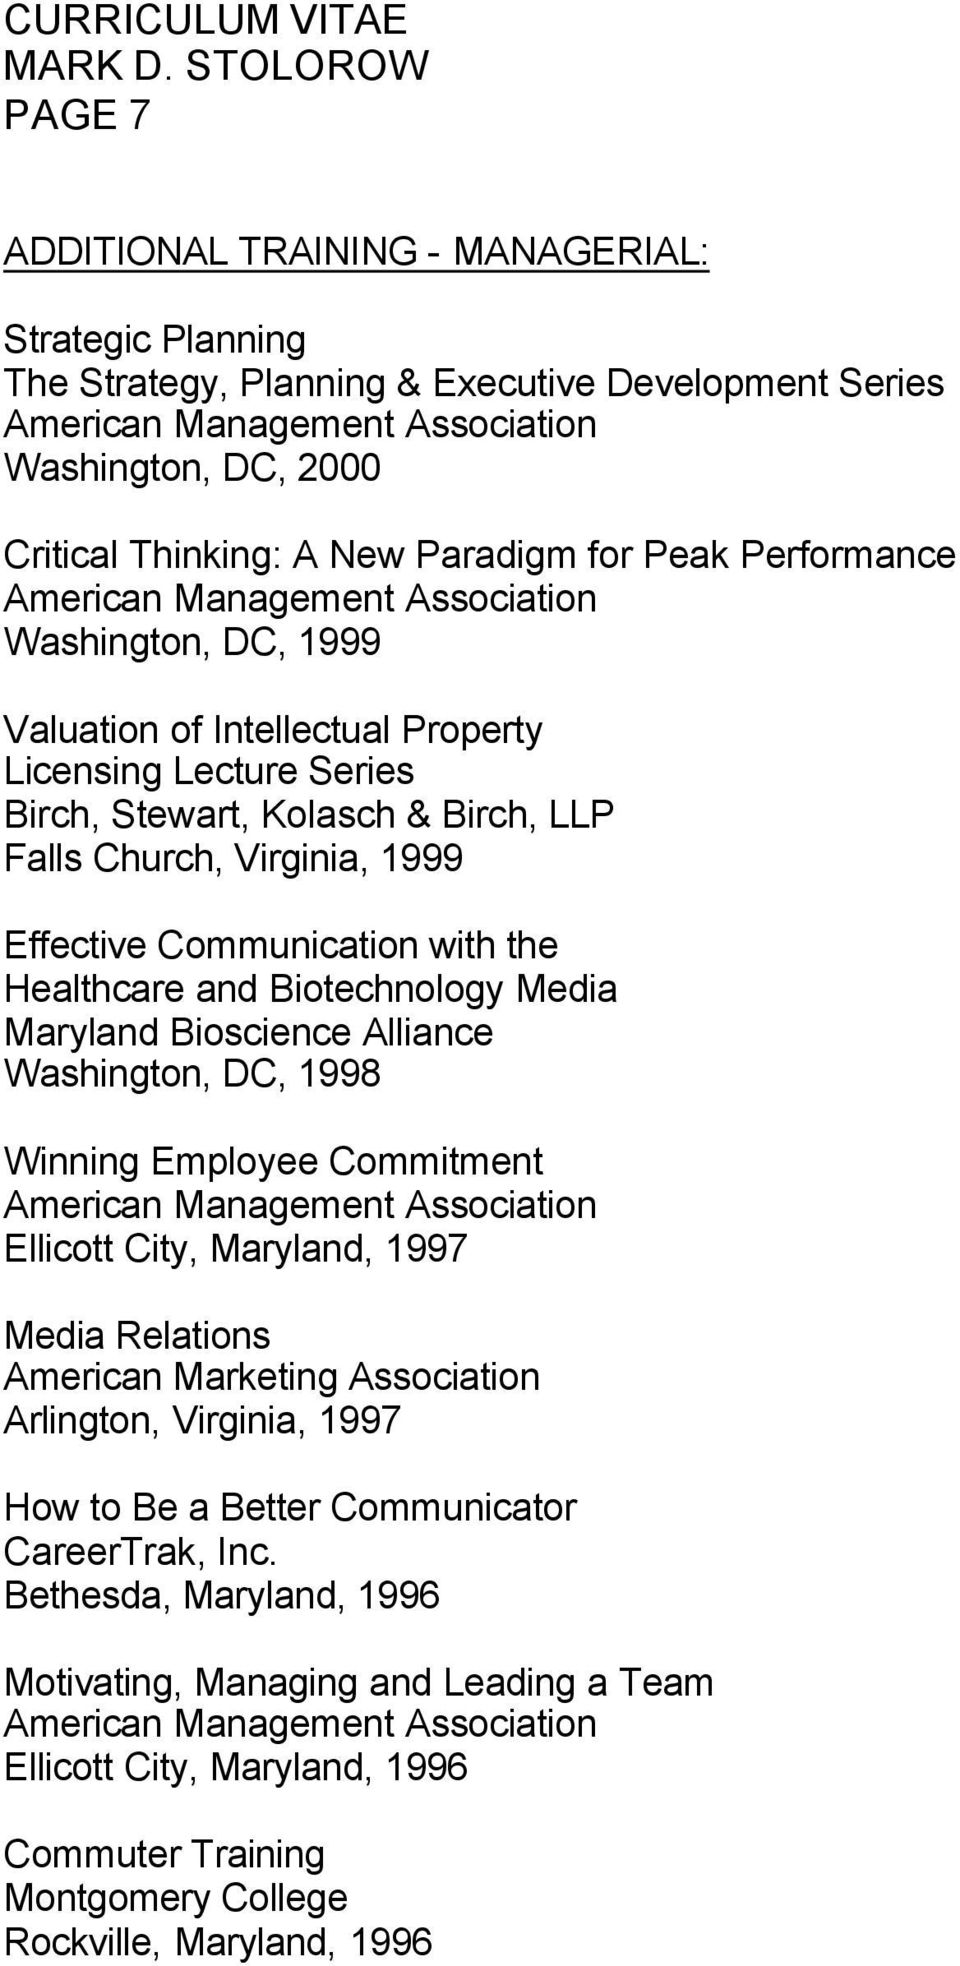 Virginia, 1999 Effective Communication with the Healthcare and Biotechnology Media Maryland Bioscience Alliance Washington, DC, 1998 Winning Employee Commitment American Management Association